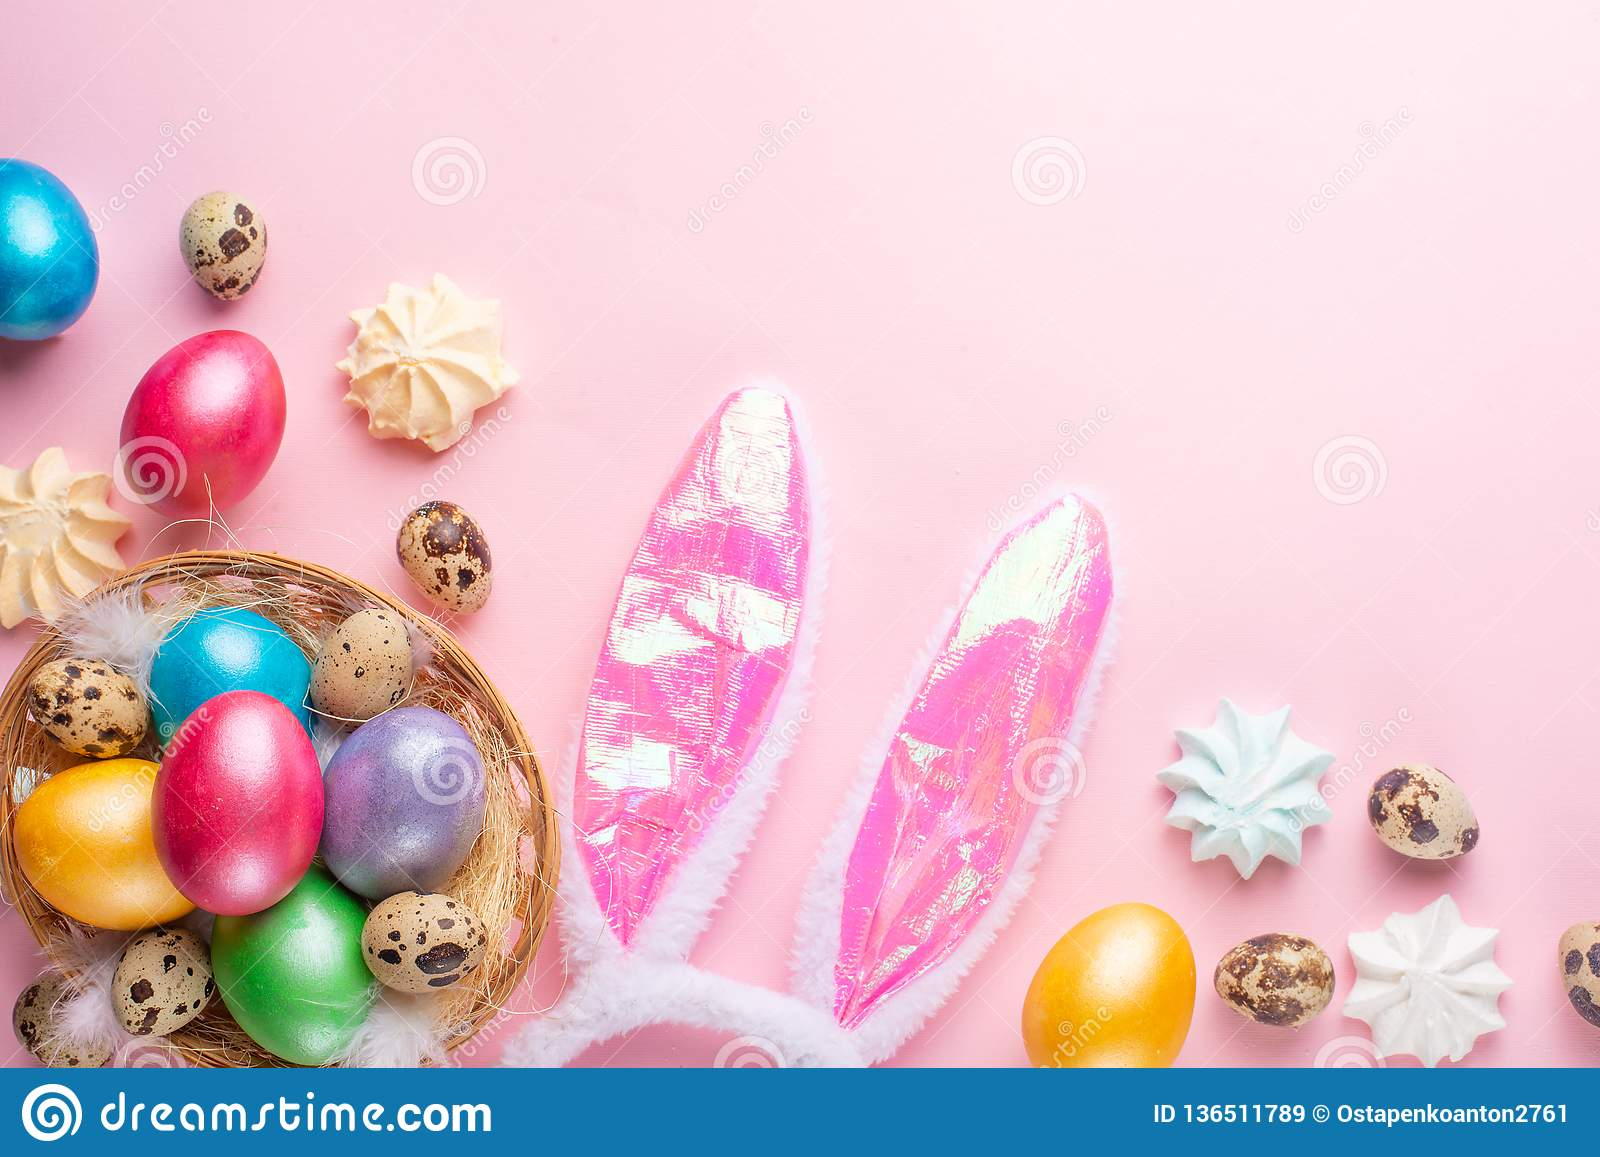 Easter eggs colored with rabbit ears and sweets .flat lay with space for design,horizontal composition. Greeting card concept